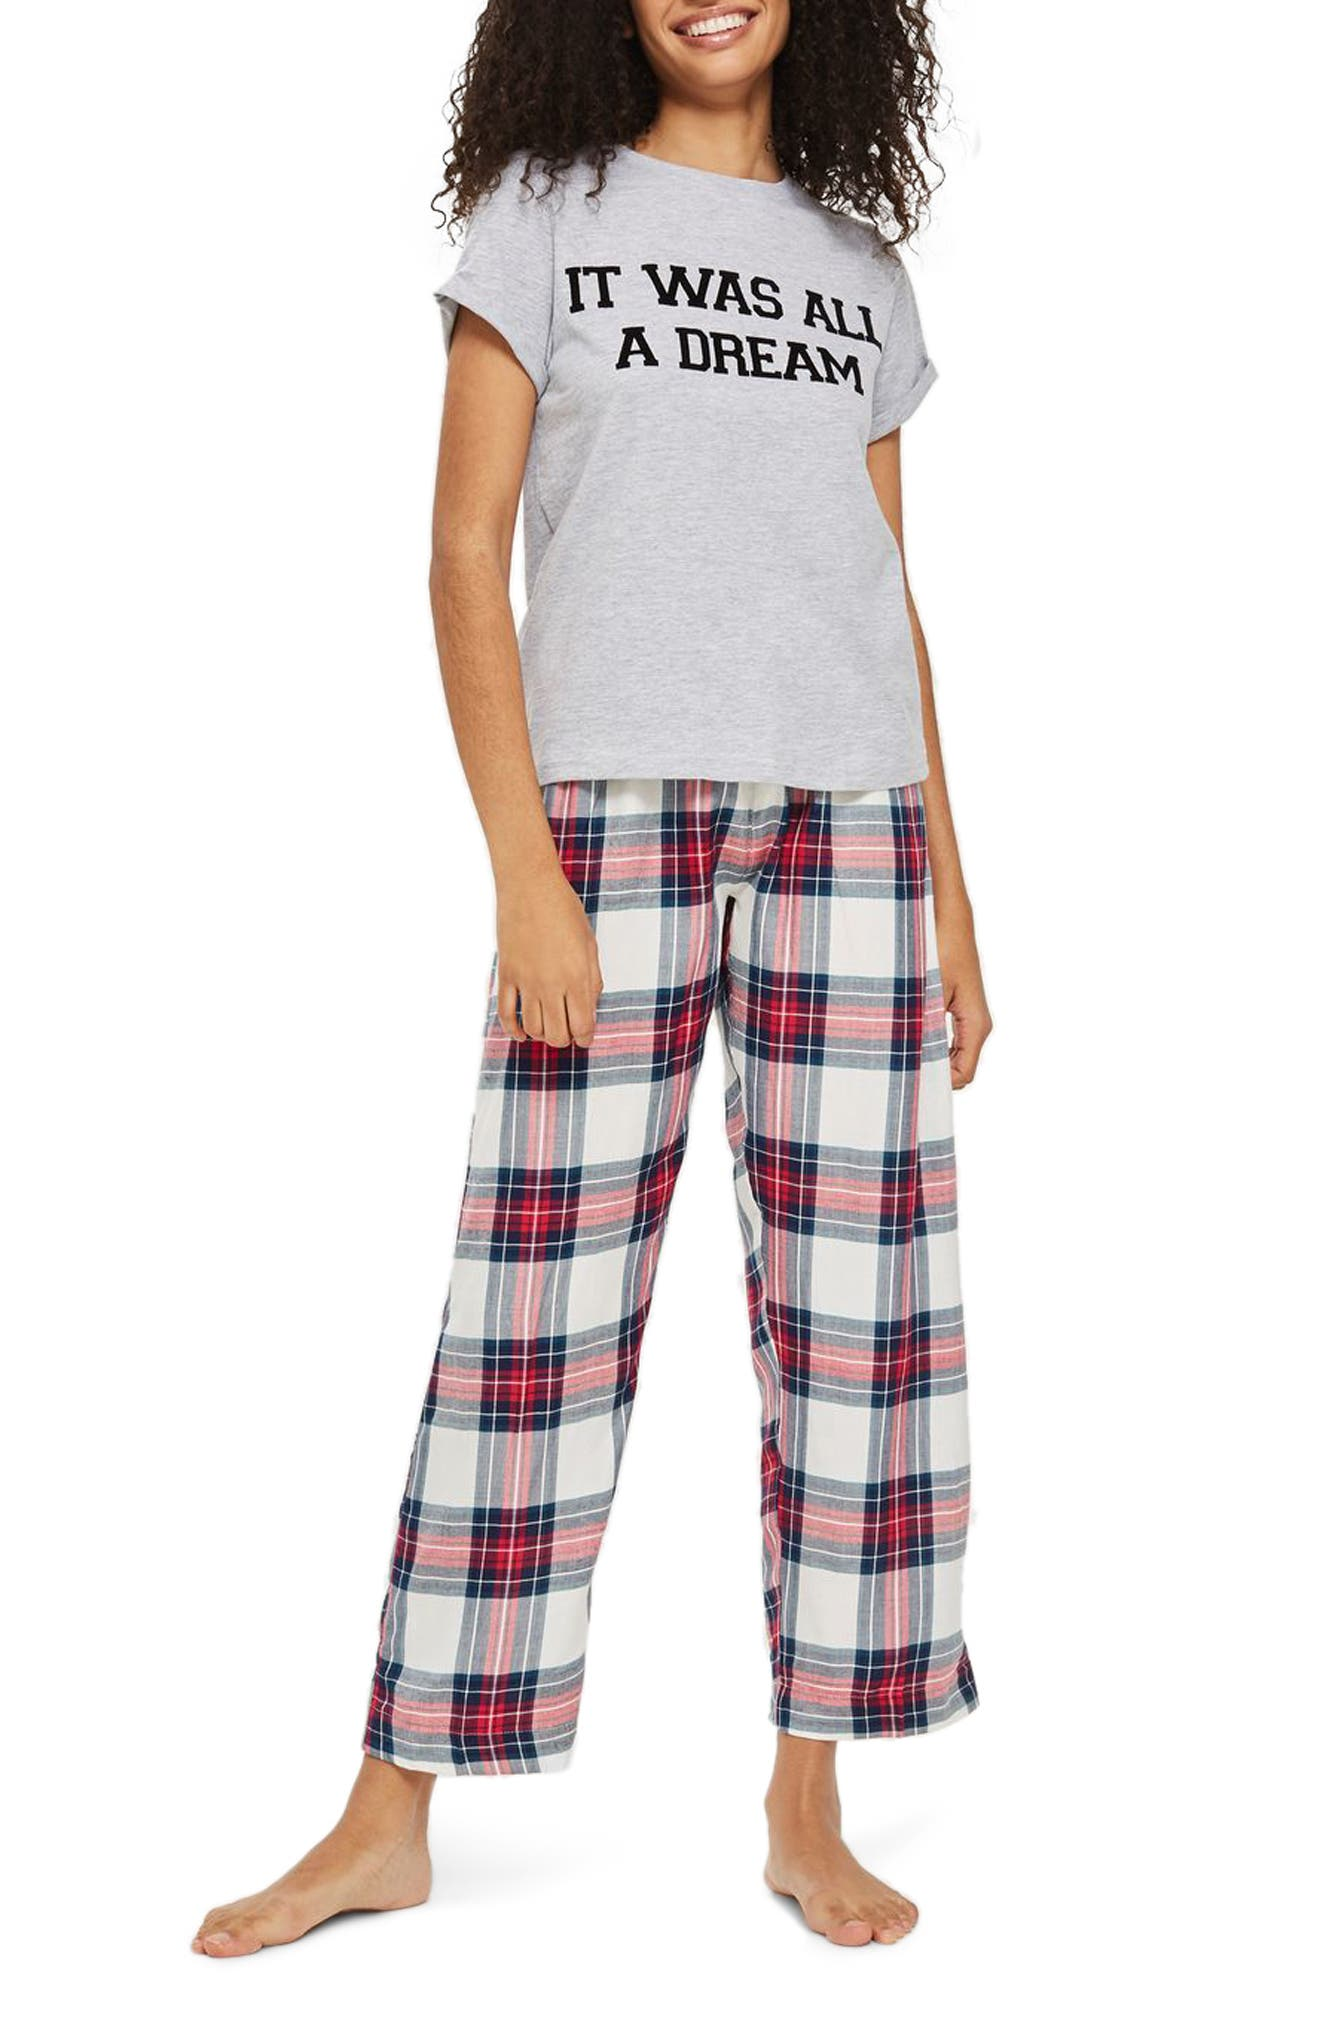 It Was All a Dream Pajamas,                             Main thumbnail 1, color,                             Red Multi